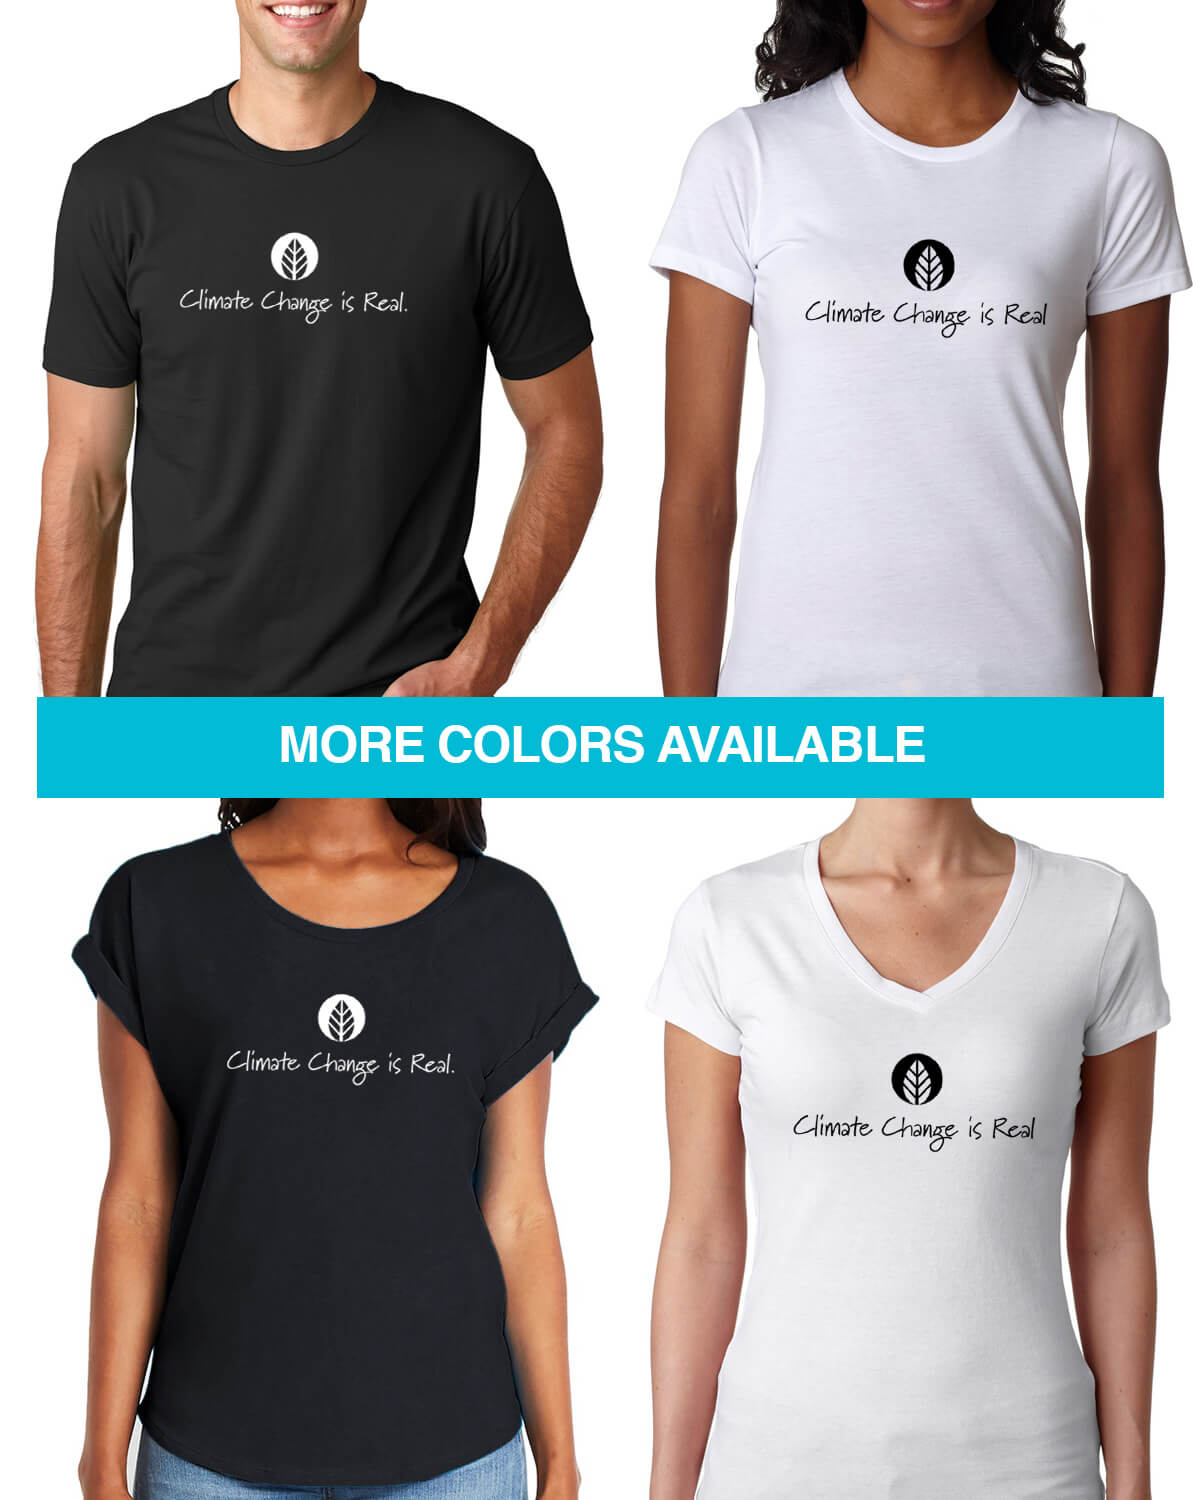 Climate Change is Real Short sleeve t-shirts for men and women